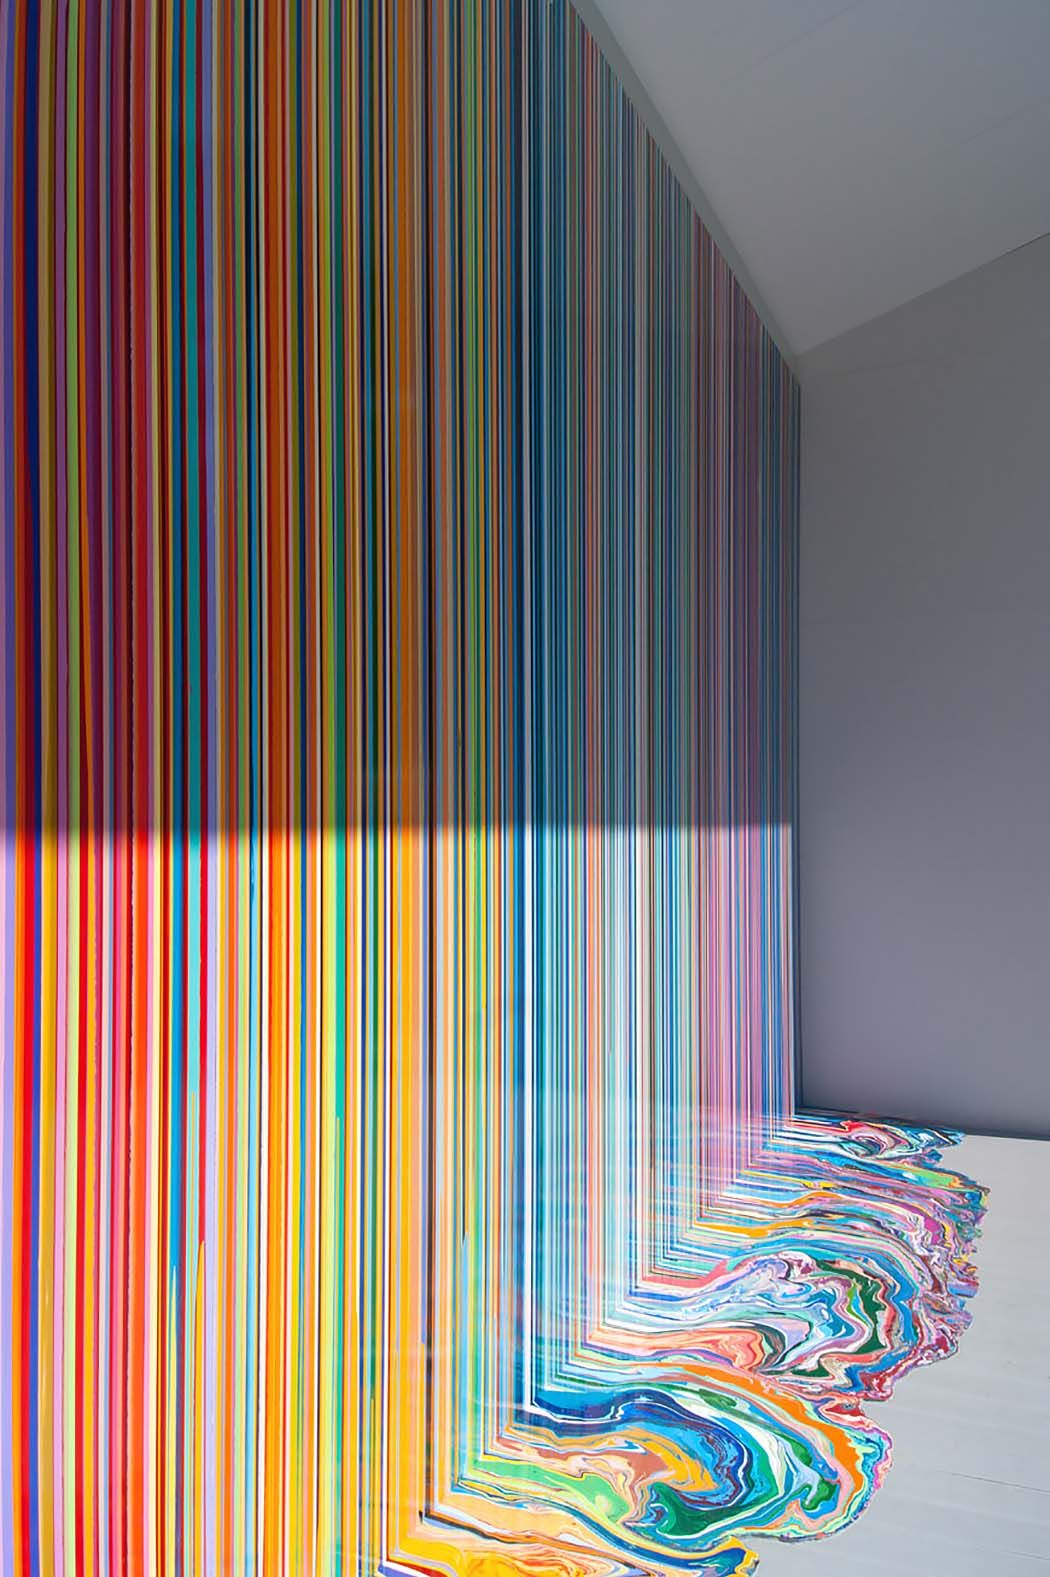 Ian Davenport S Poured Lines And Puddle Paintings Ignant Diy